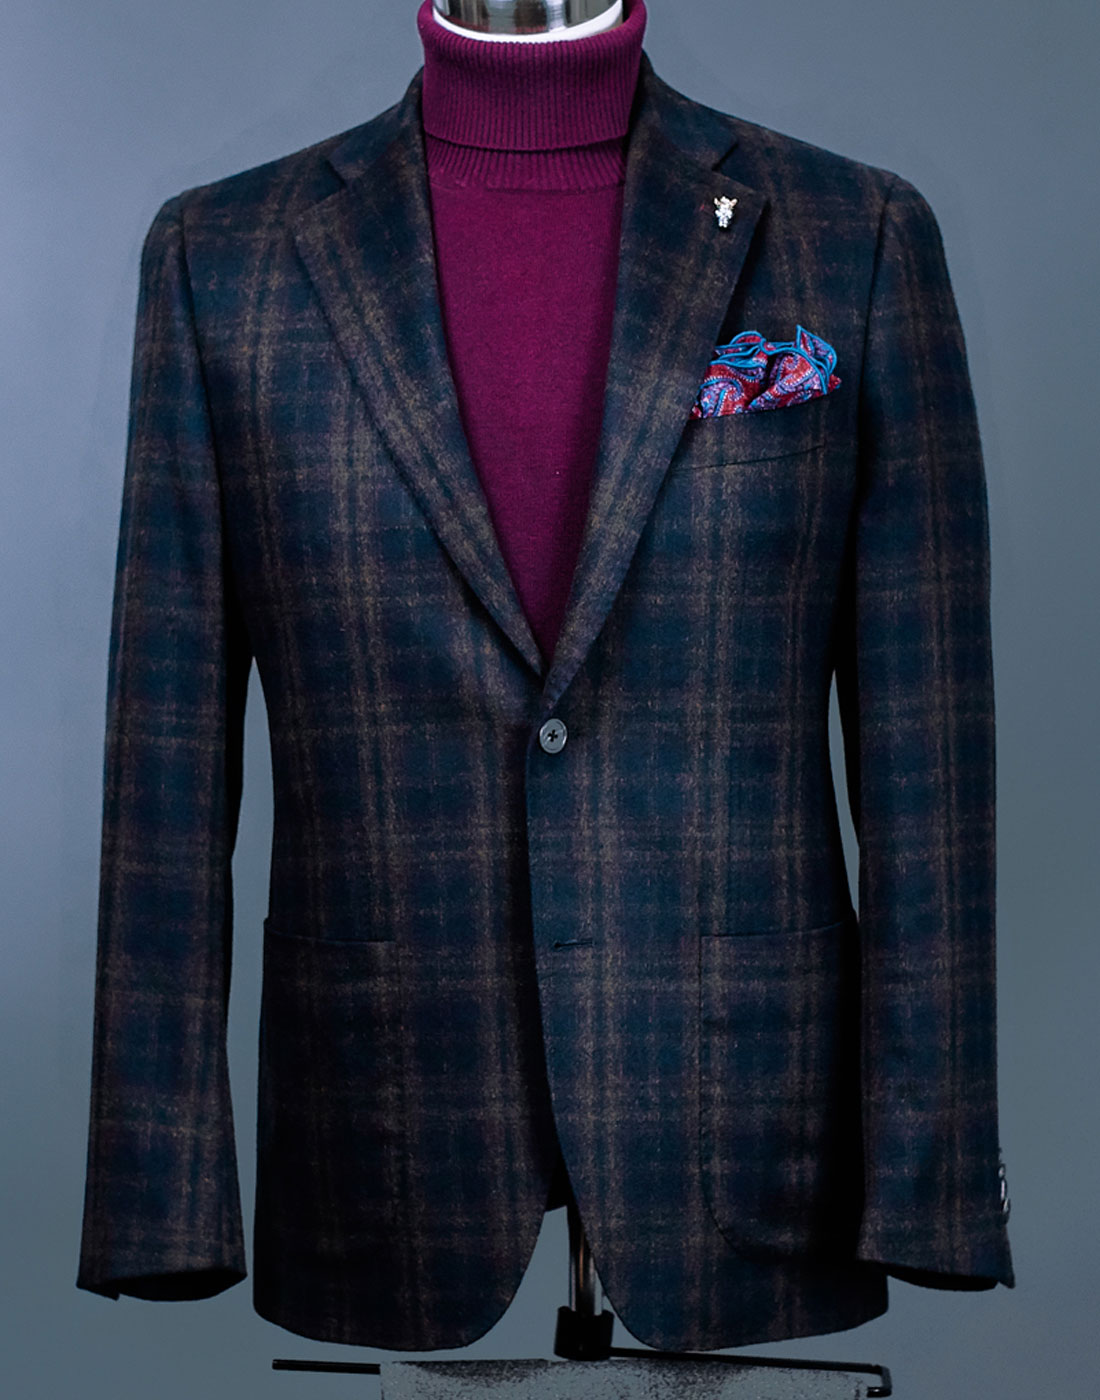 Men's bespoke suit jacket slider 4